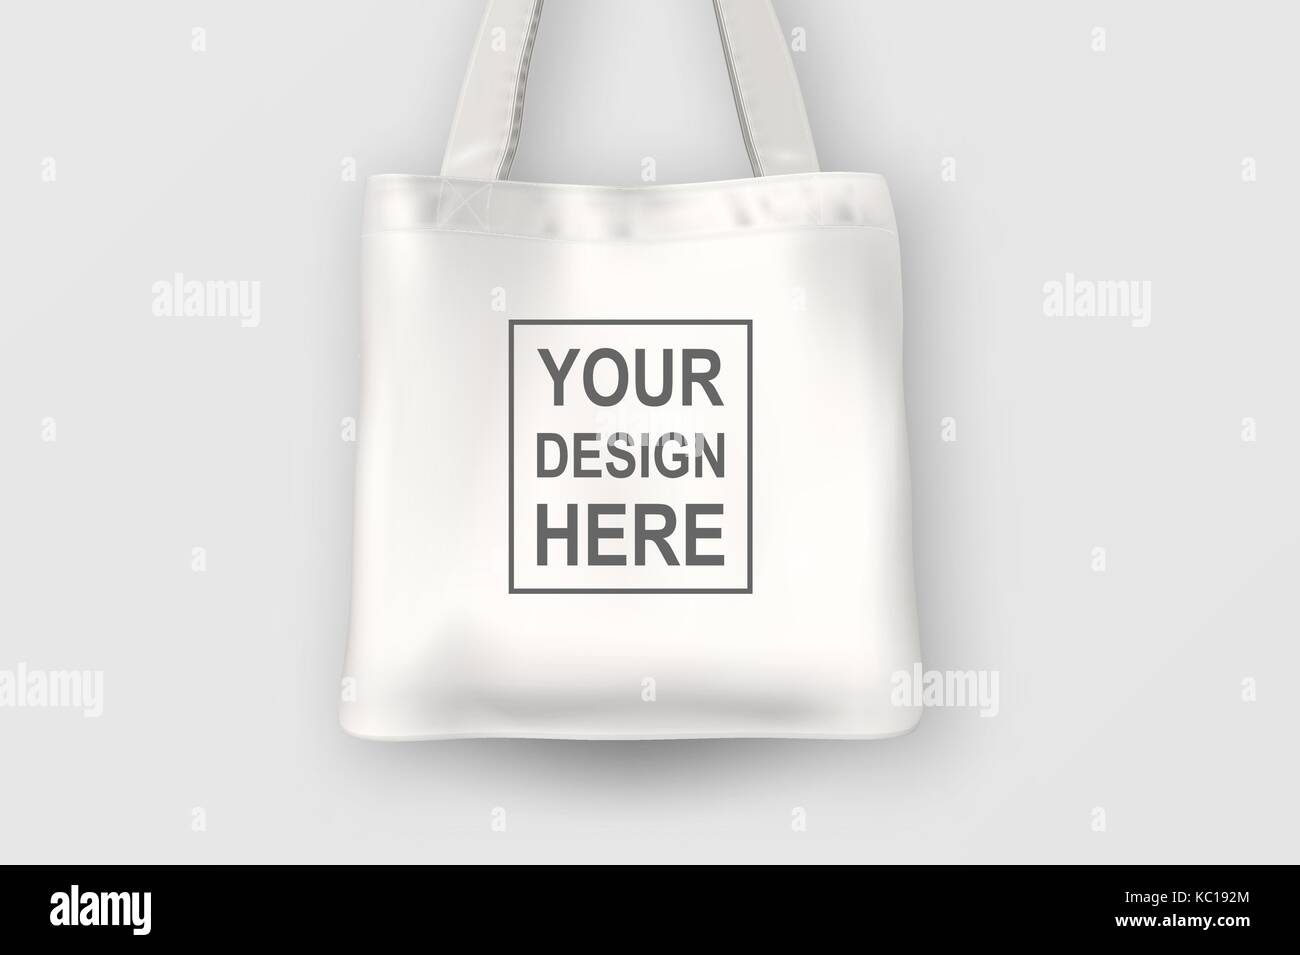 Realistic Vector White Empty Textile Tote Bag Closeup Isolated On